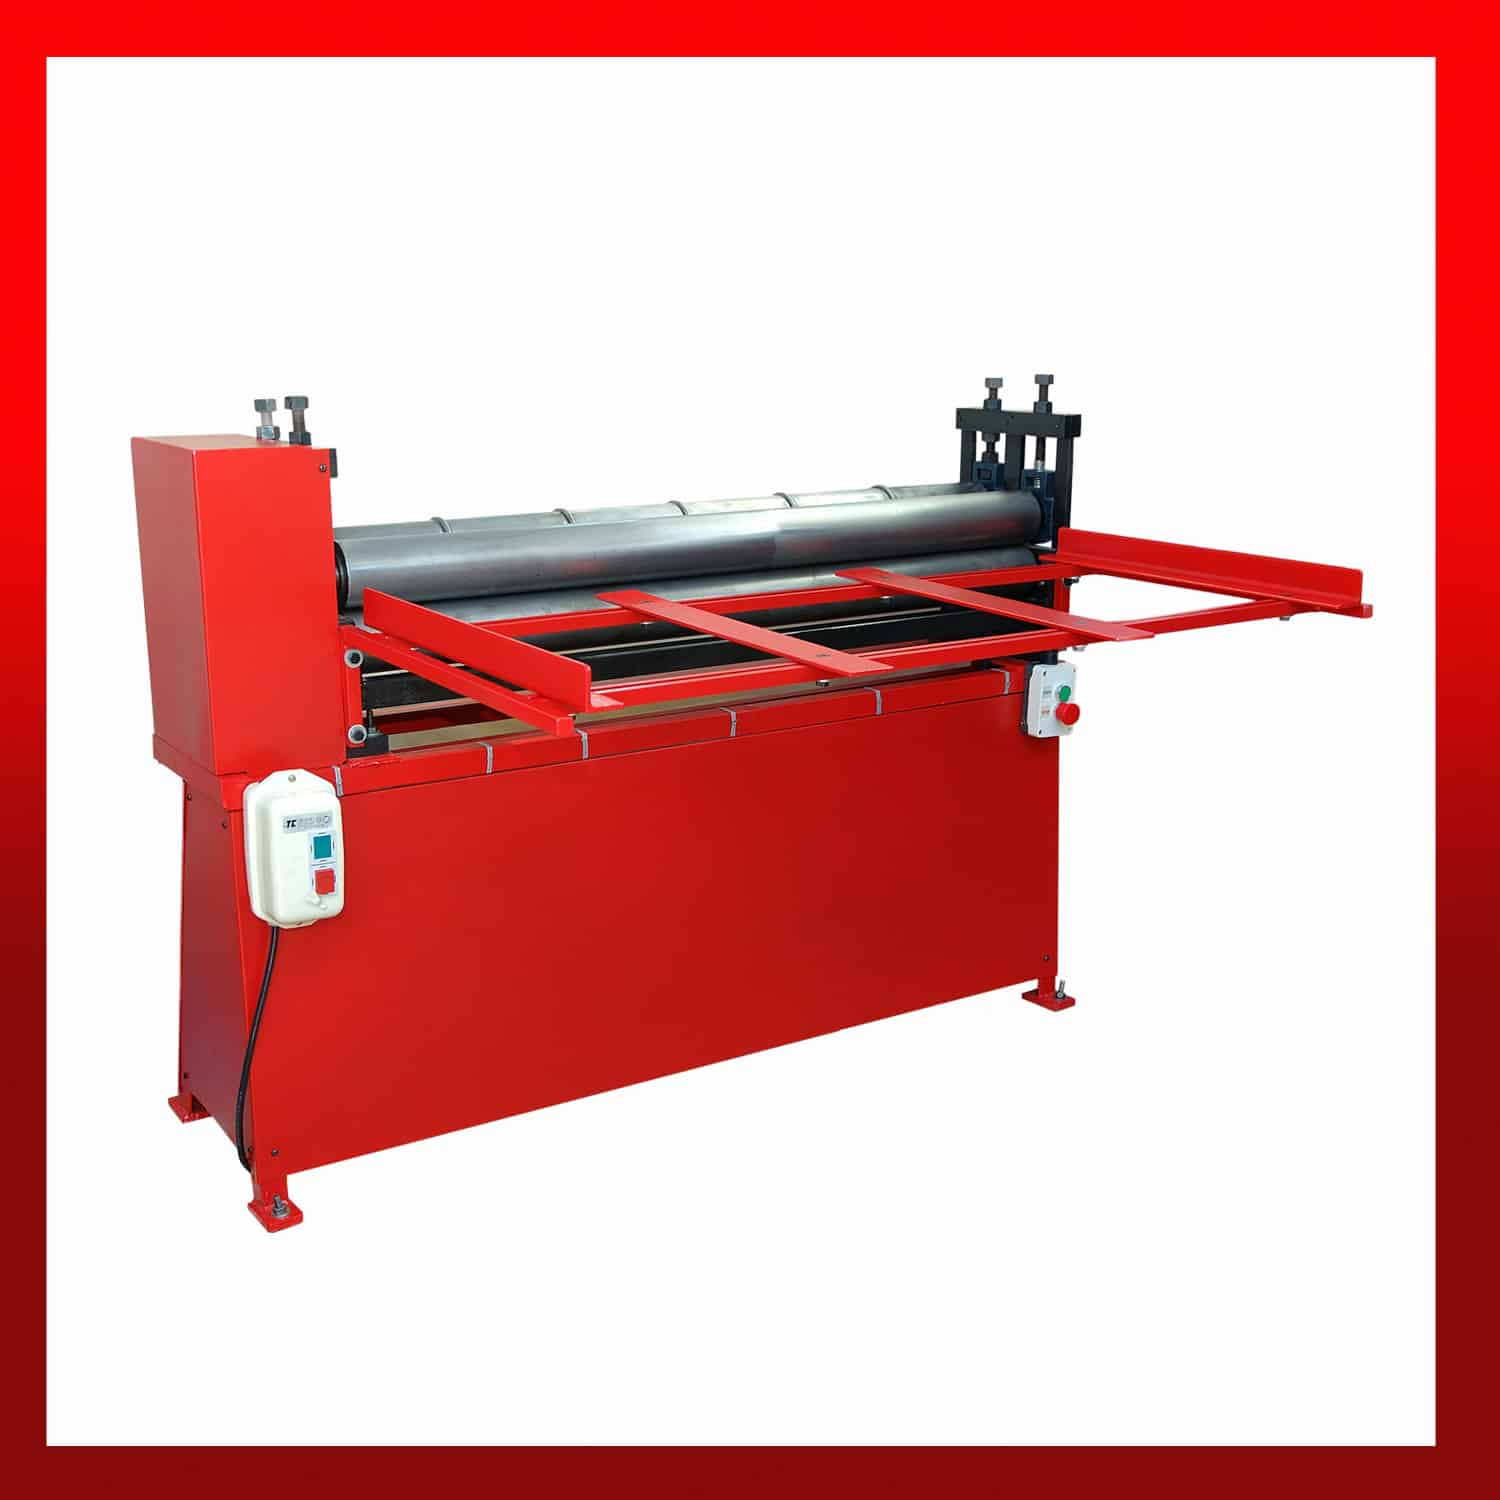 WNS Beading / Duct Stiffening Machines  Available in 4 Sizes